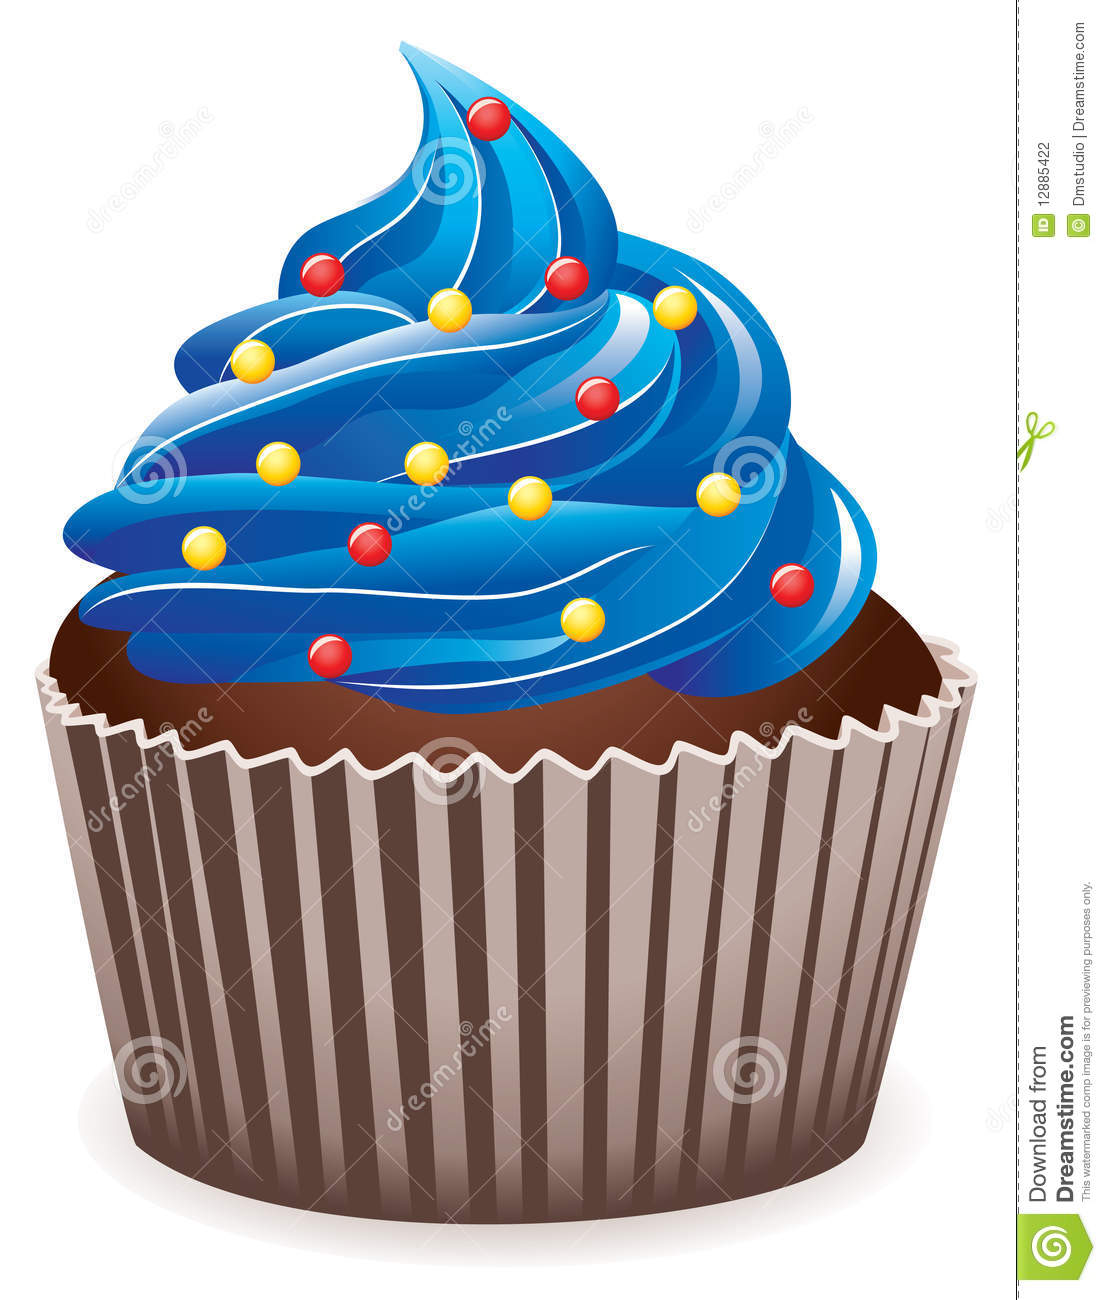 Birthday Cake And Ice Cream Clipart